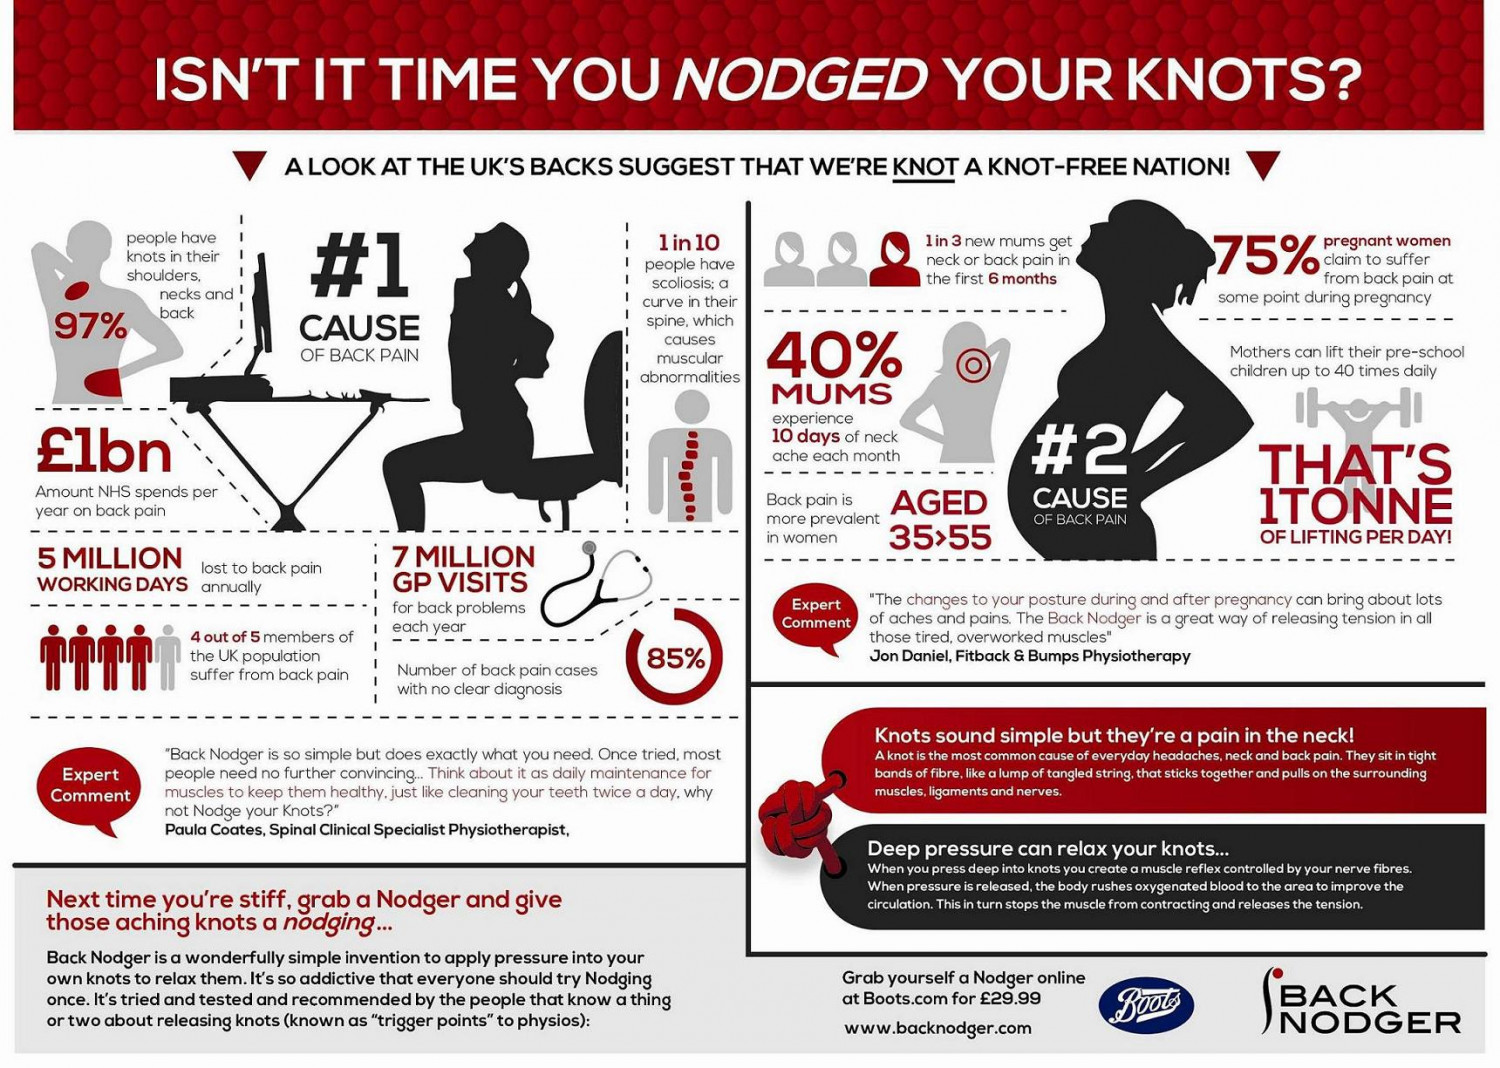 Time to Nodge Your Knots Infographic